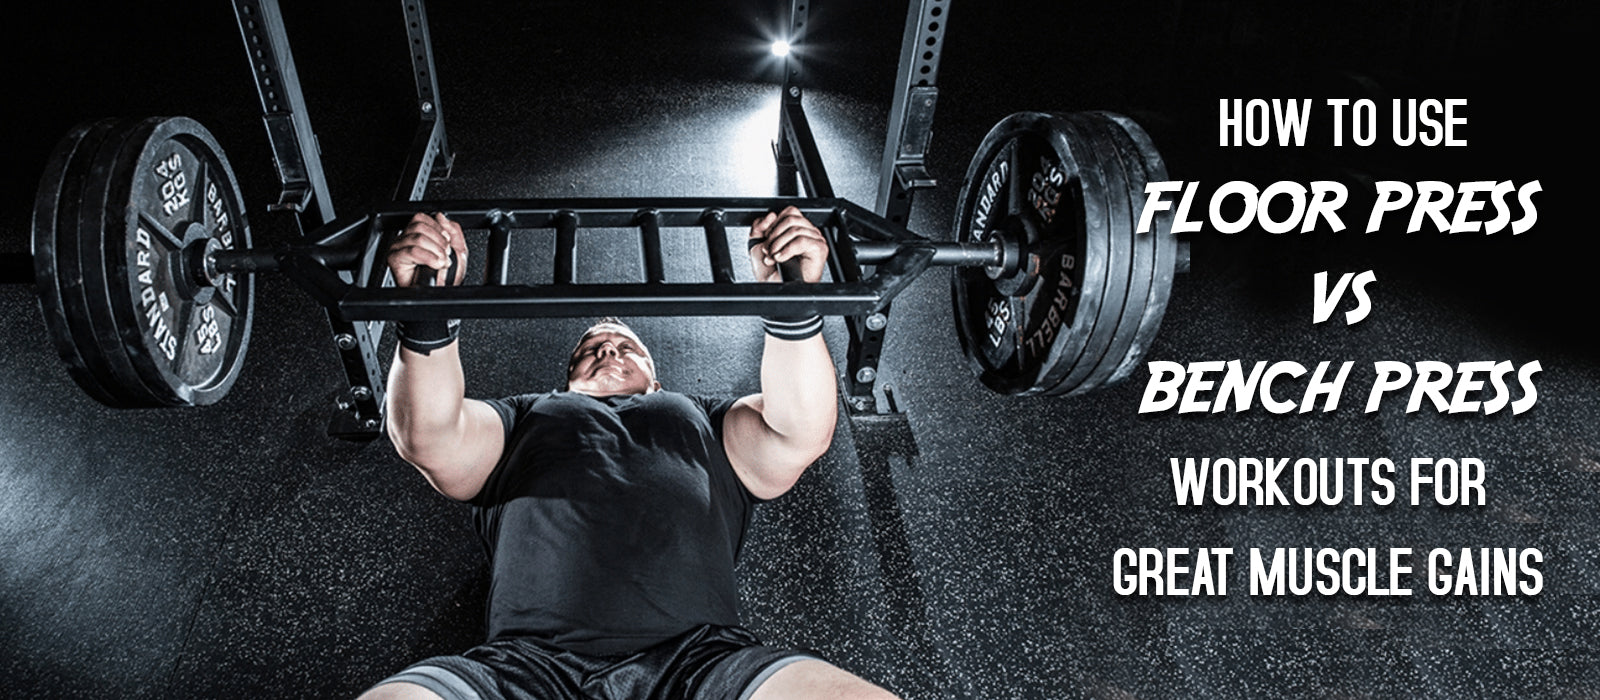 How to Use Floor Press Vs Bench Press Workouts for Great Muscle Gains